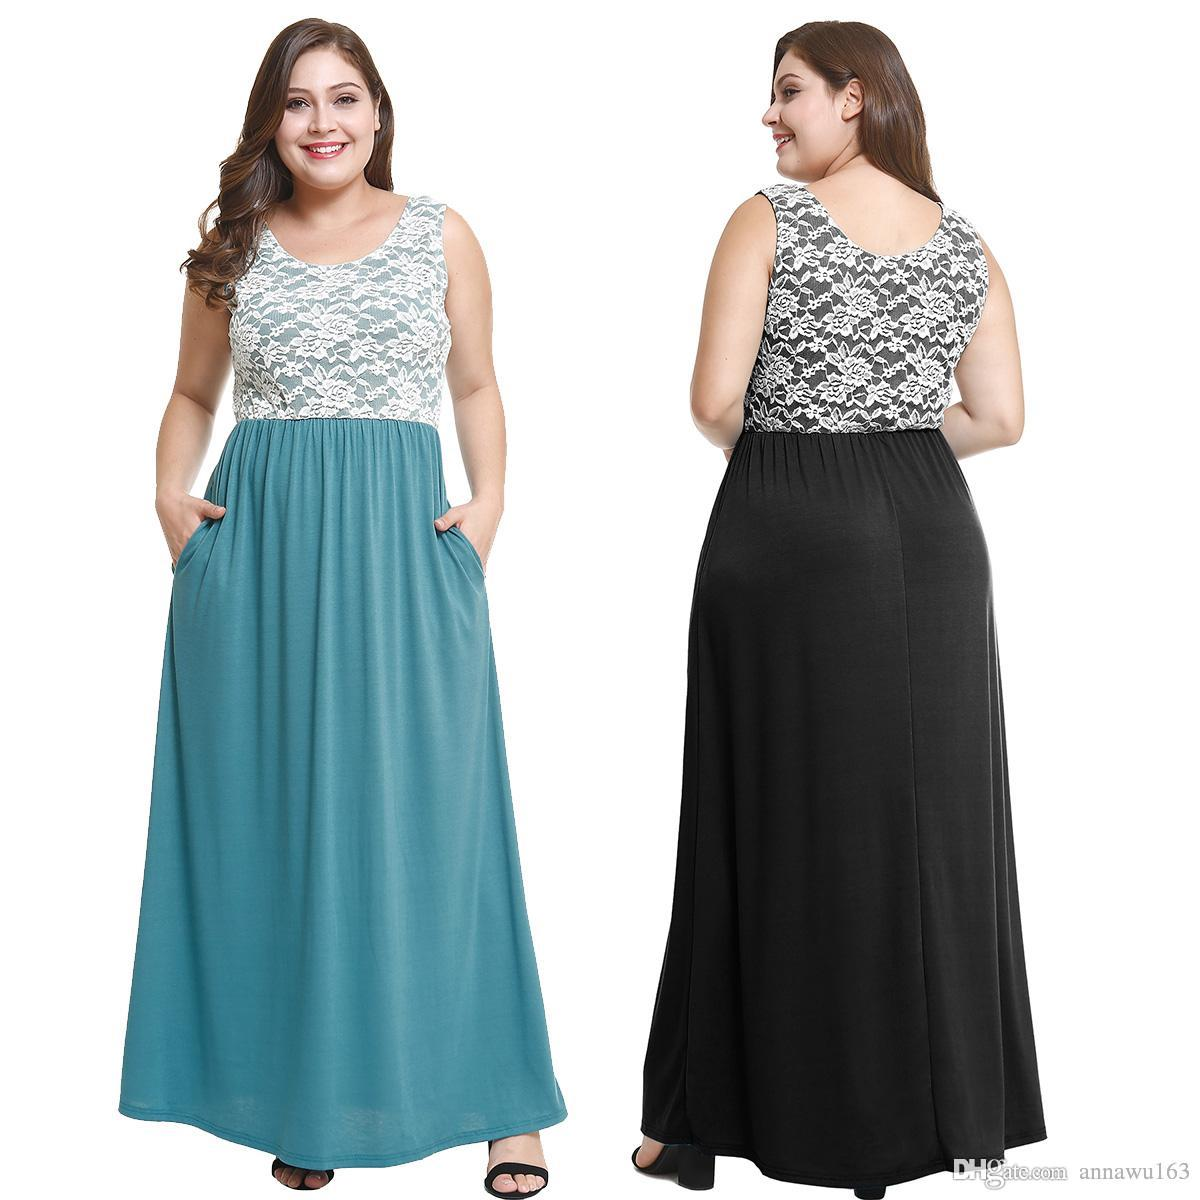 New Arrival Sexy Plus Size Dress Sleeveless Ankle-length Lace Dress  Promotion clothing XL-4XL women's casual dresses